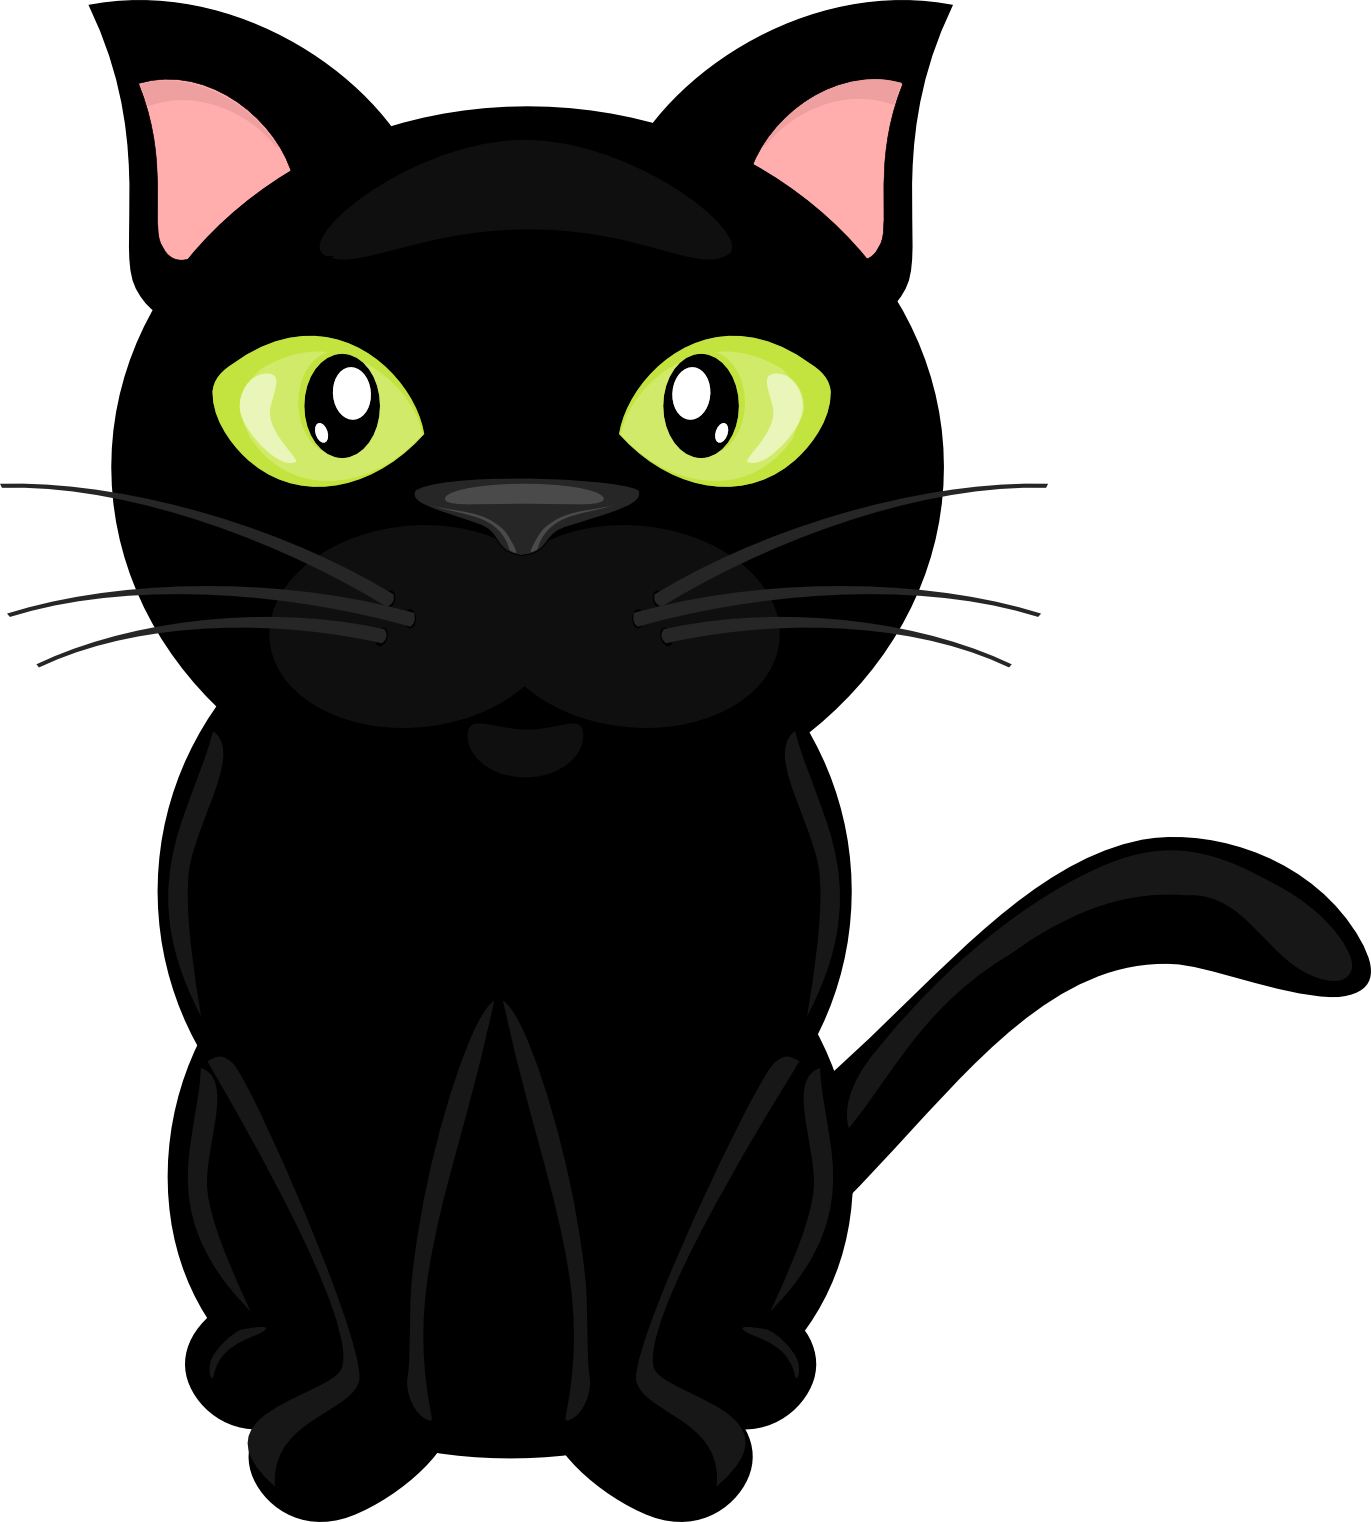 Cat clip art transparent background. On the farm green